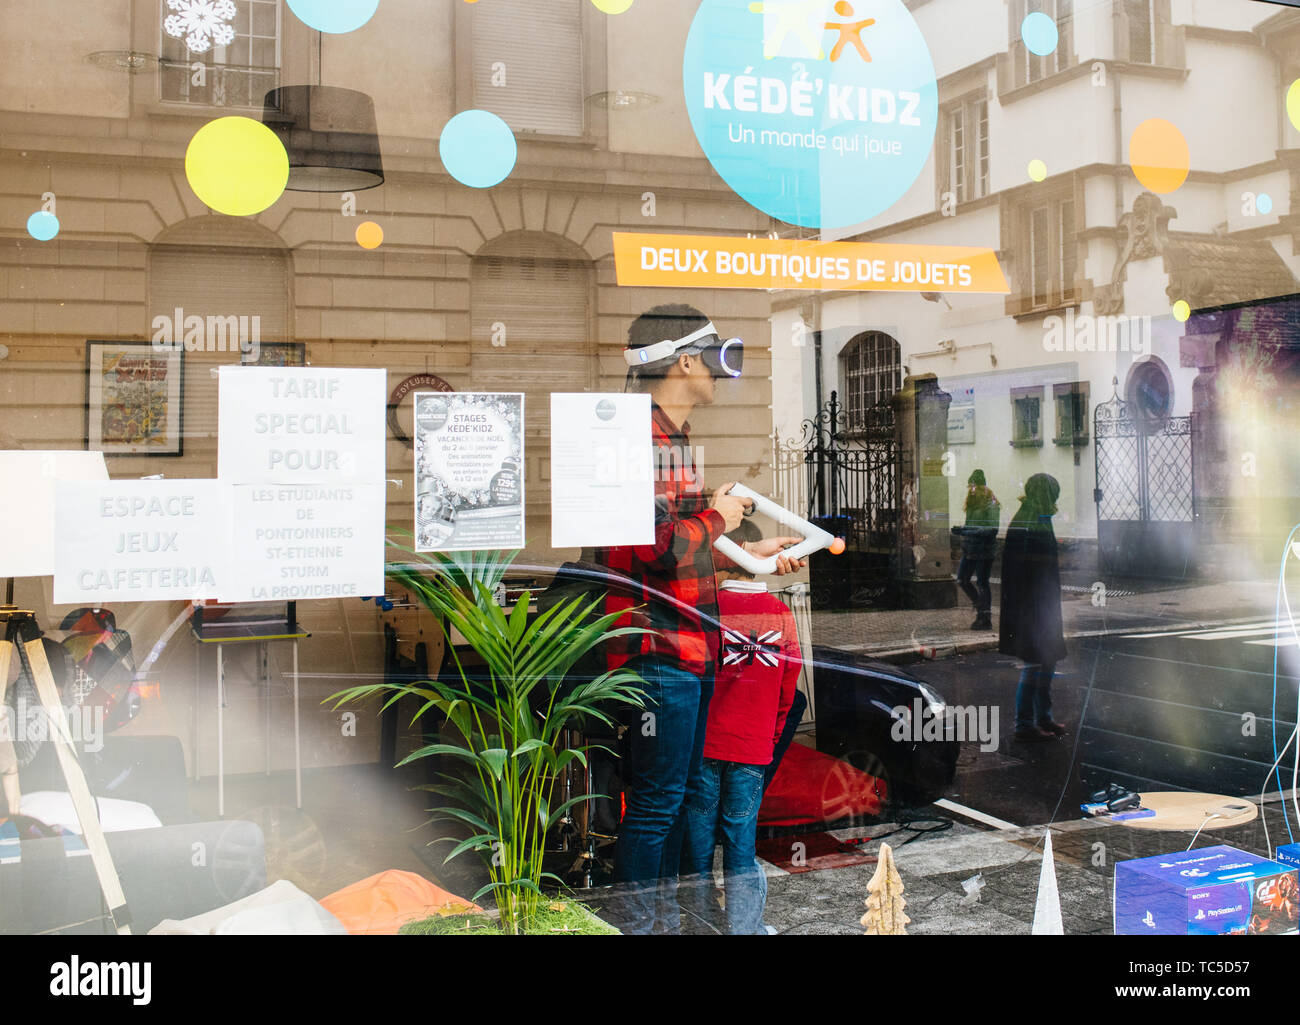 Strasbourg, France - Dec 27, 2017: Man playing inside free game zone with VR set and Precise Aiming for PlayStationVR Aim Controller at the Kede Kidz playing game center - Stock Image